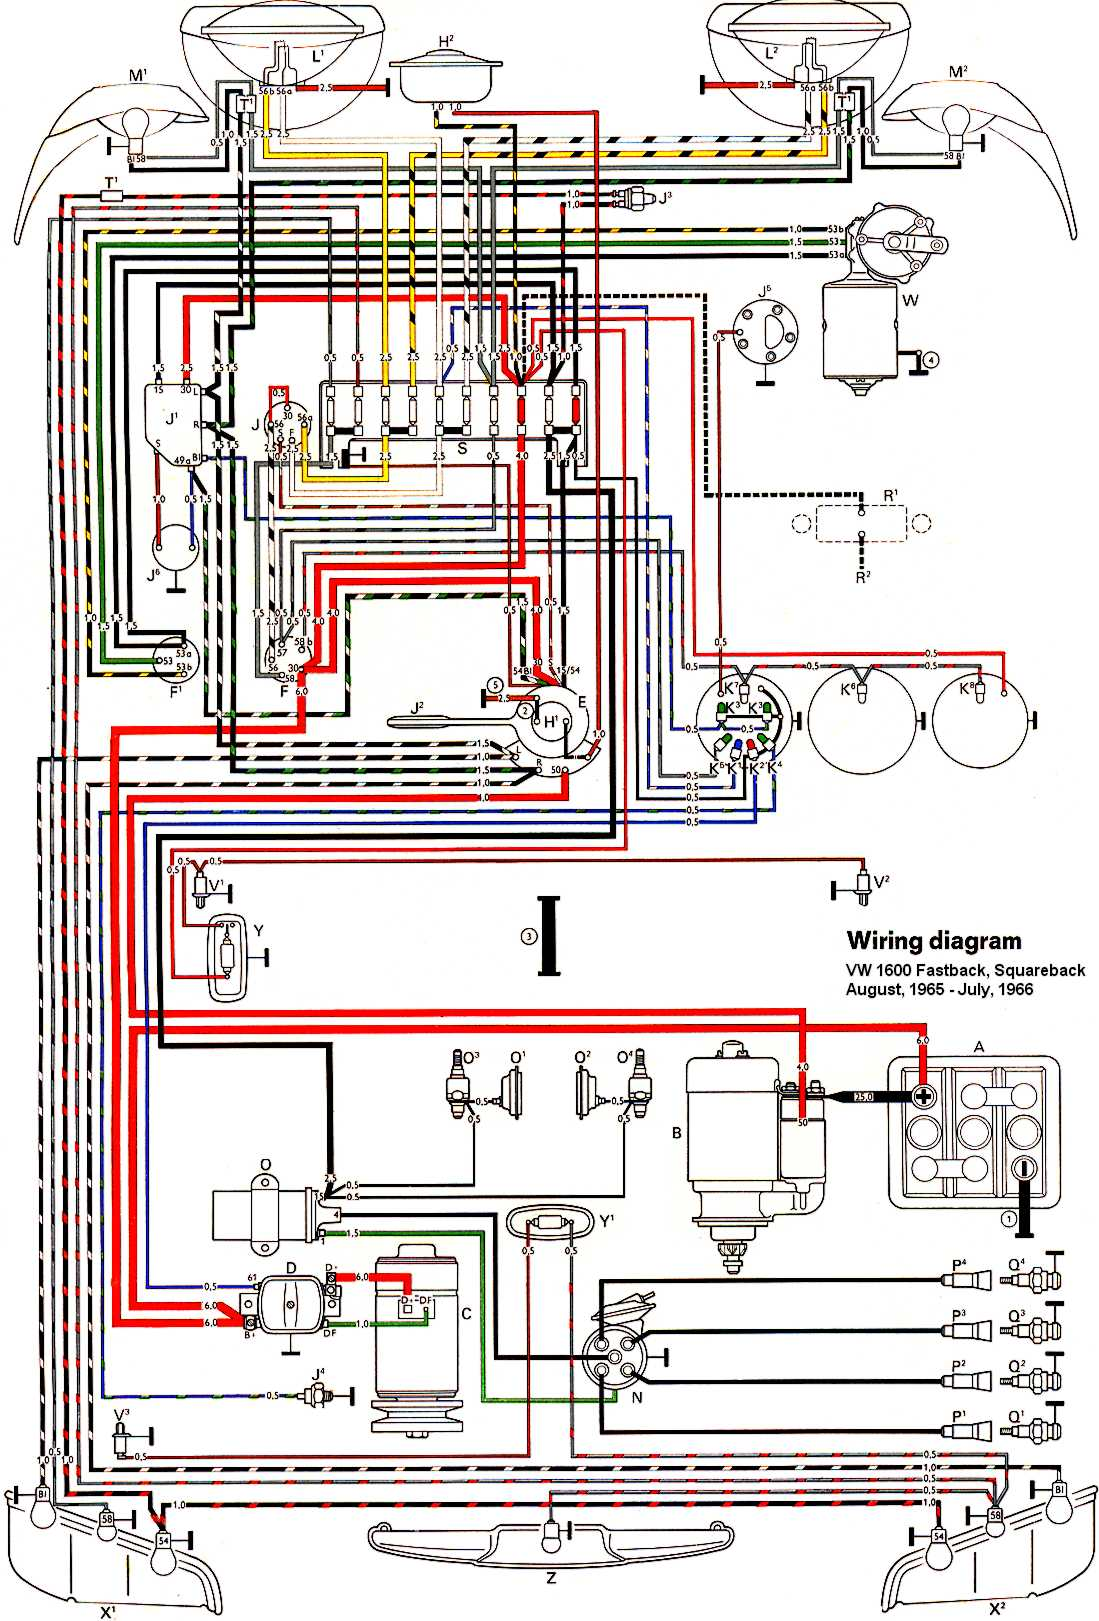 73 beetle wiring diagram backup light wiring diagram \u2022 wiring 1965 VW Bug Wiring Schematic vw bug wiring schematic